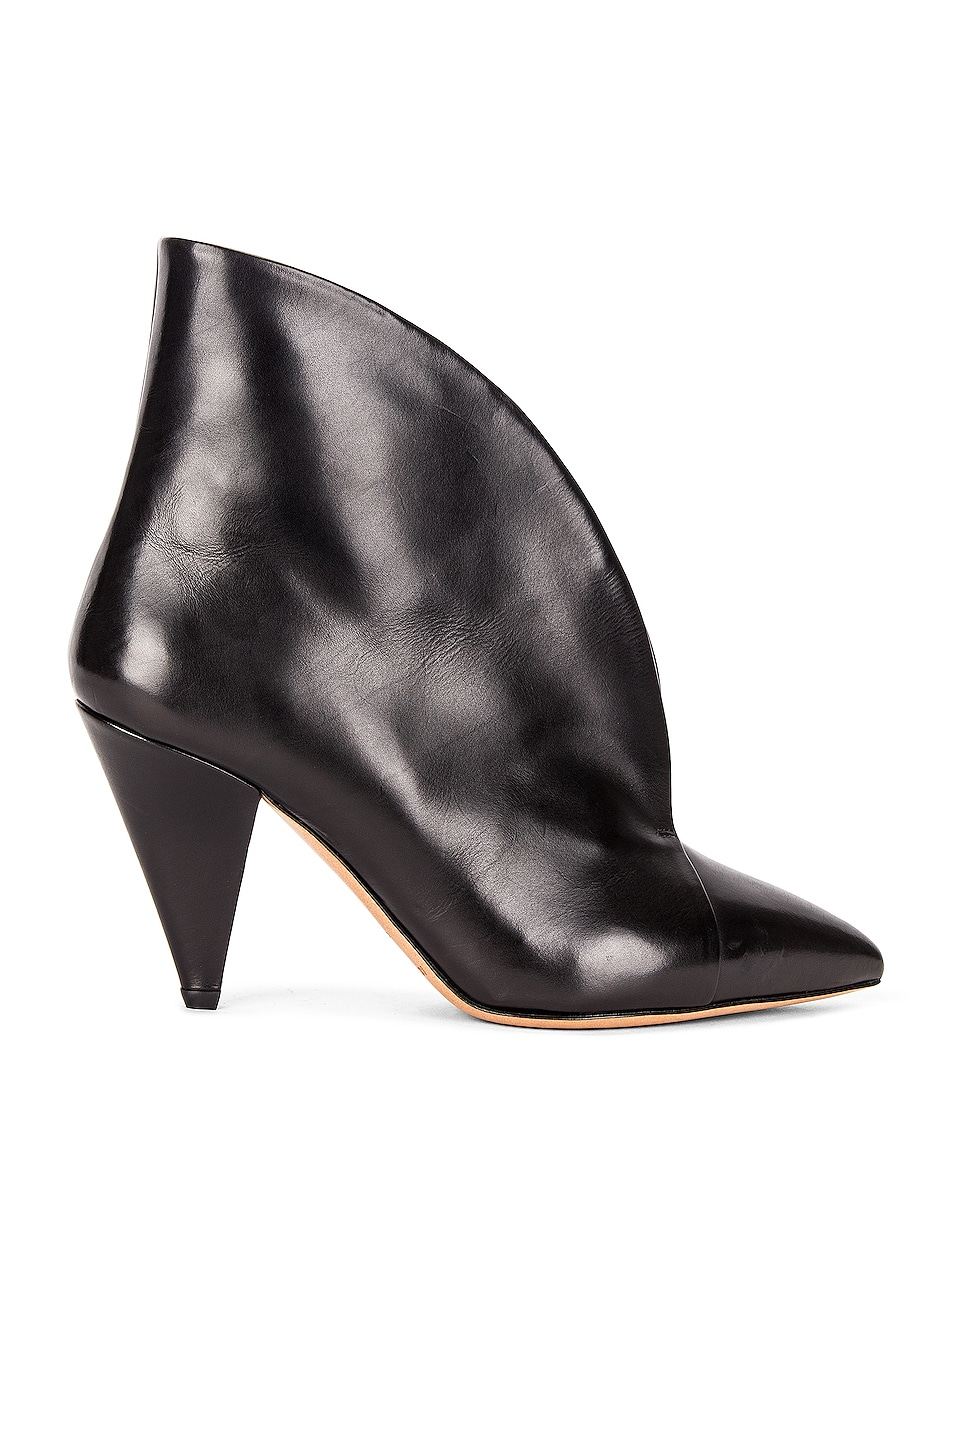 Image 1 of Isabel Marant Arfee Boot in Black